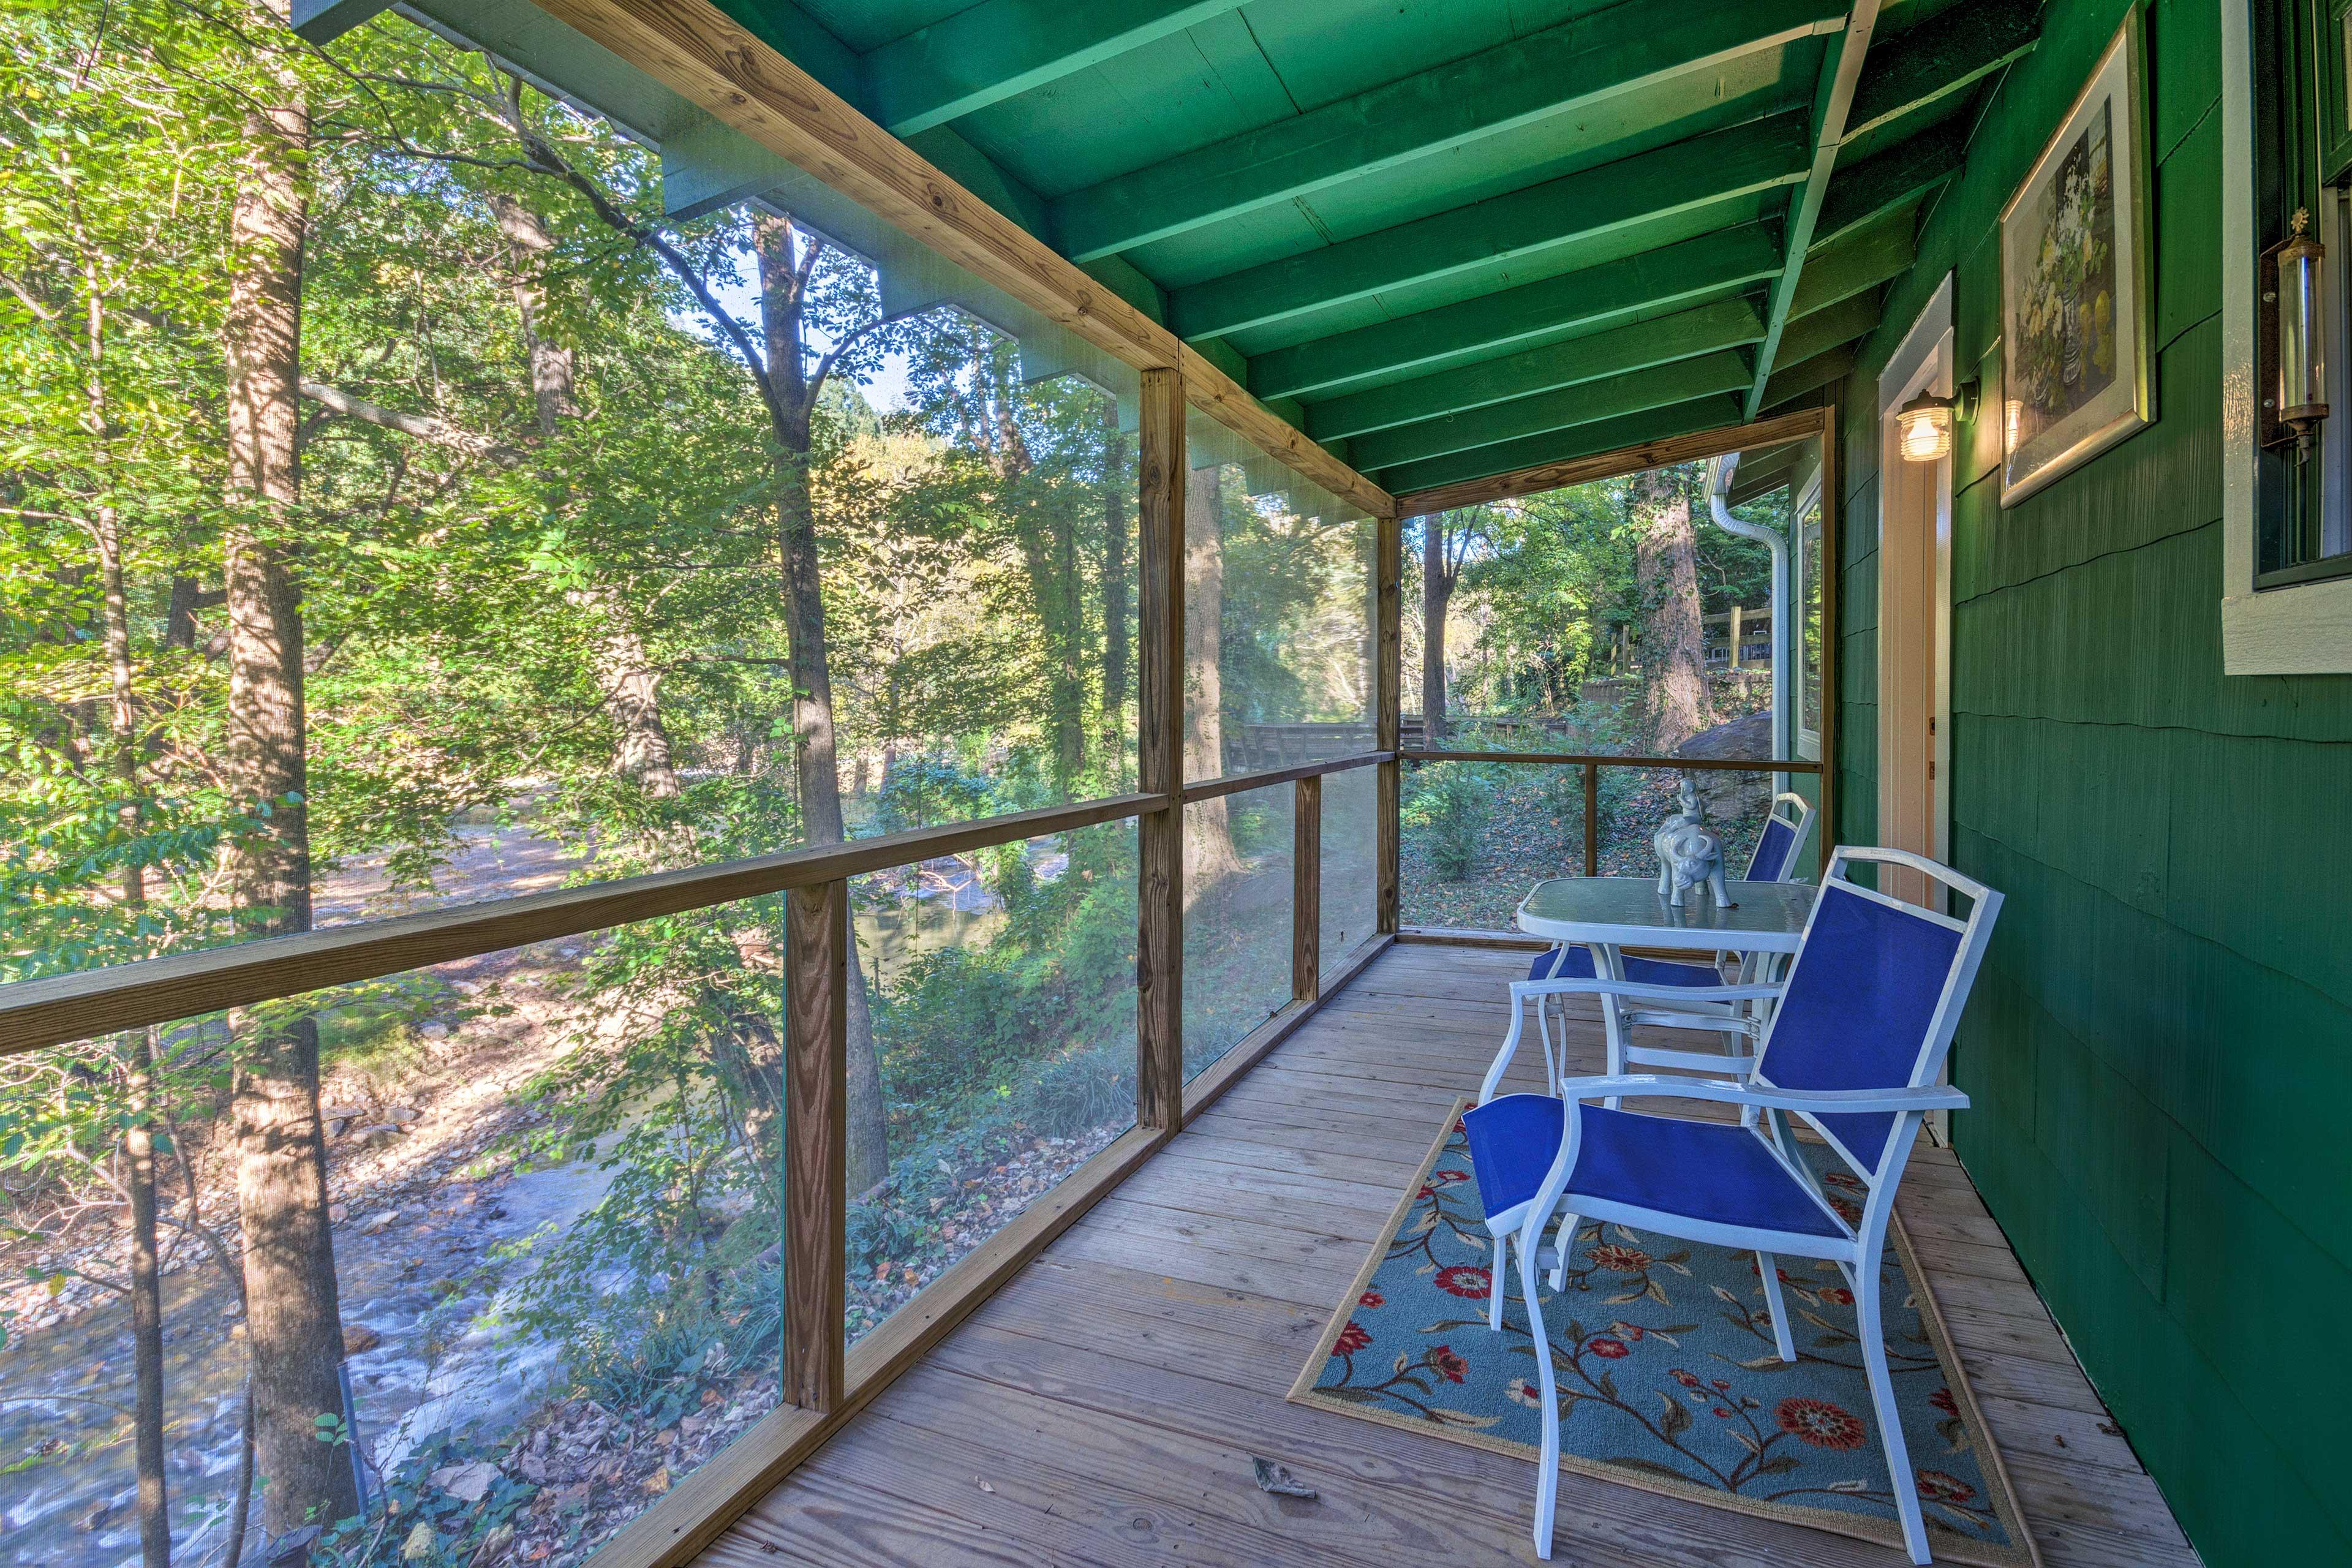 Sip morning coffee or evening nightcaps on the screened porch.